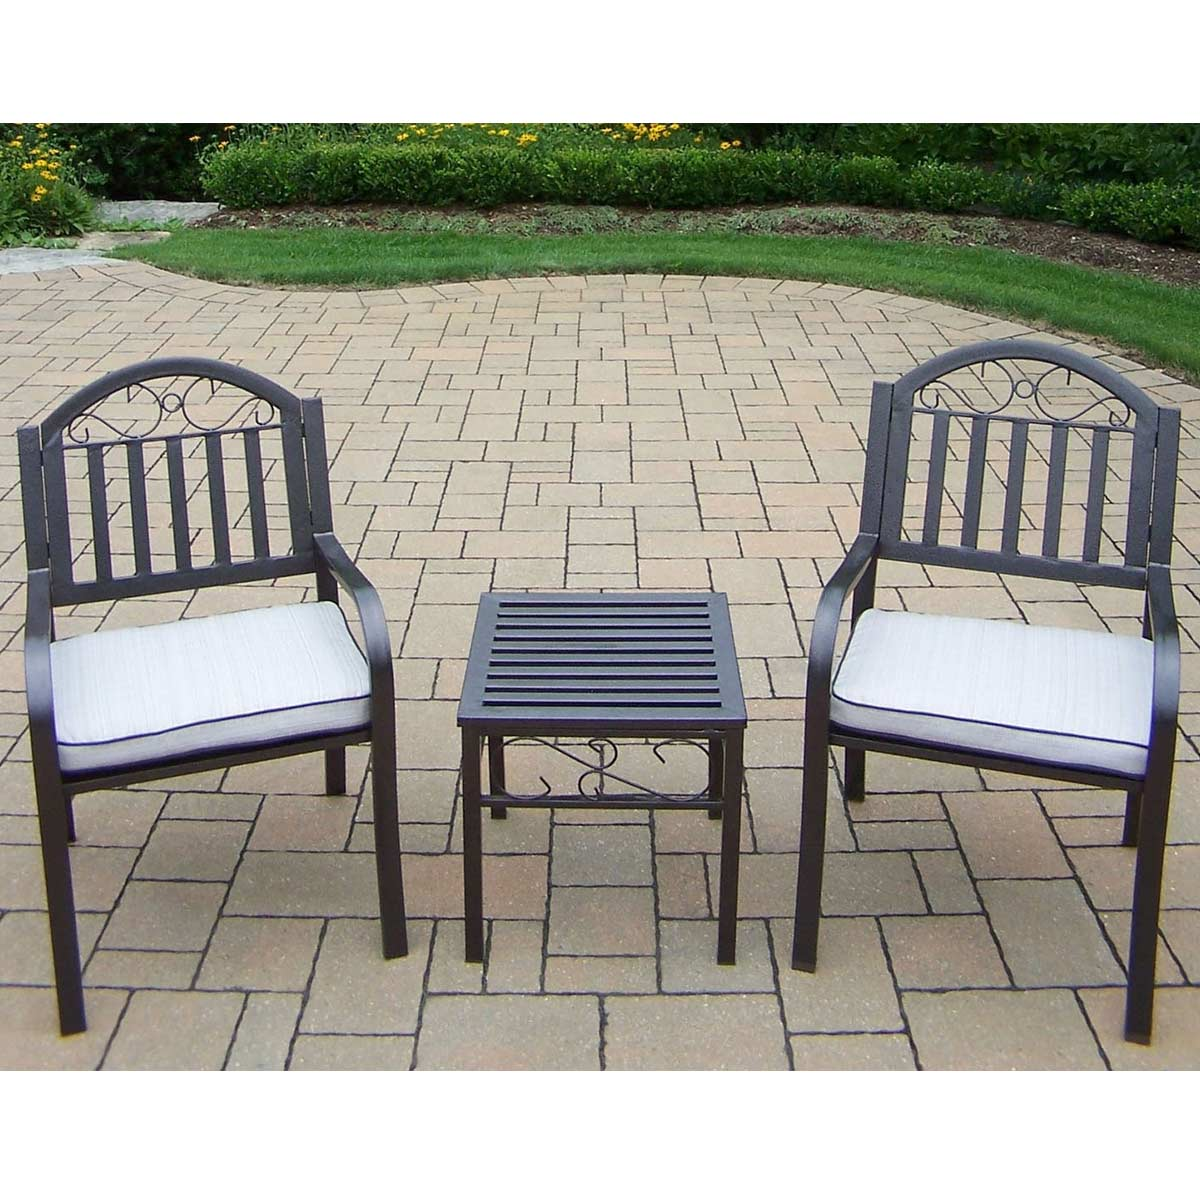 Oakland Living Rochester 3 Piece Chairs and Table Set with Cushions in Hammer